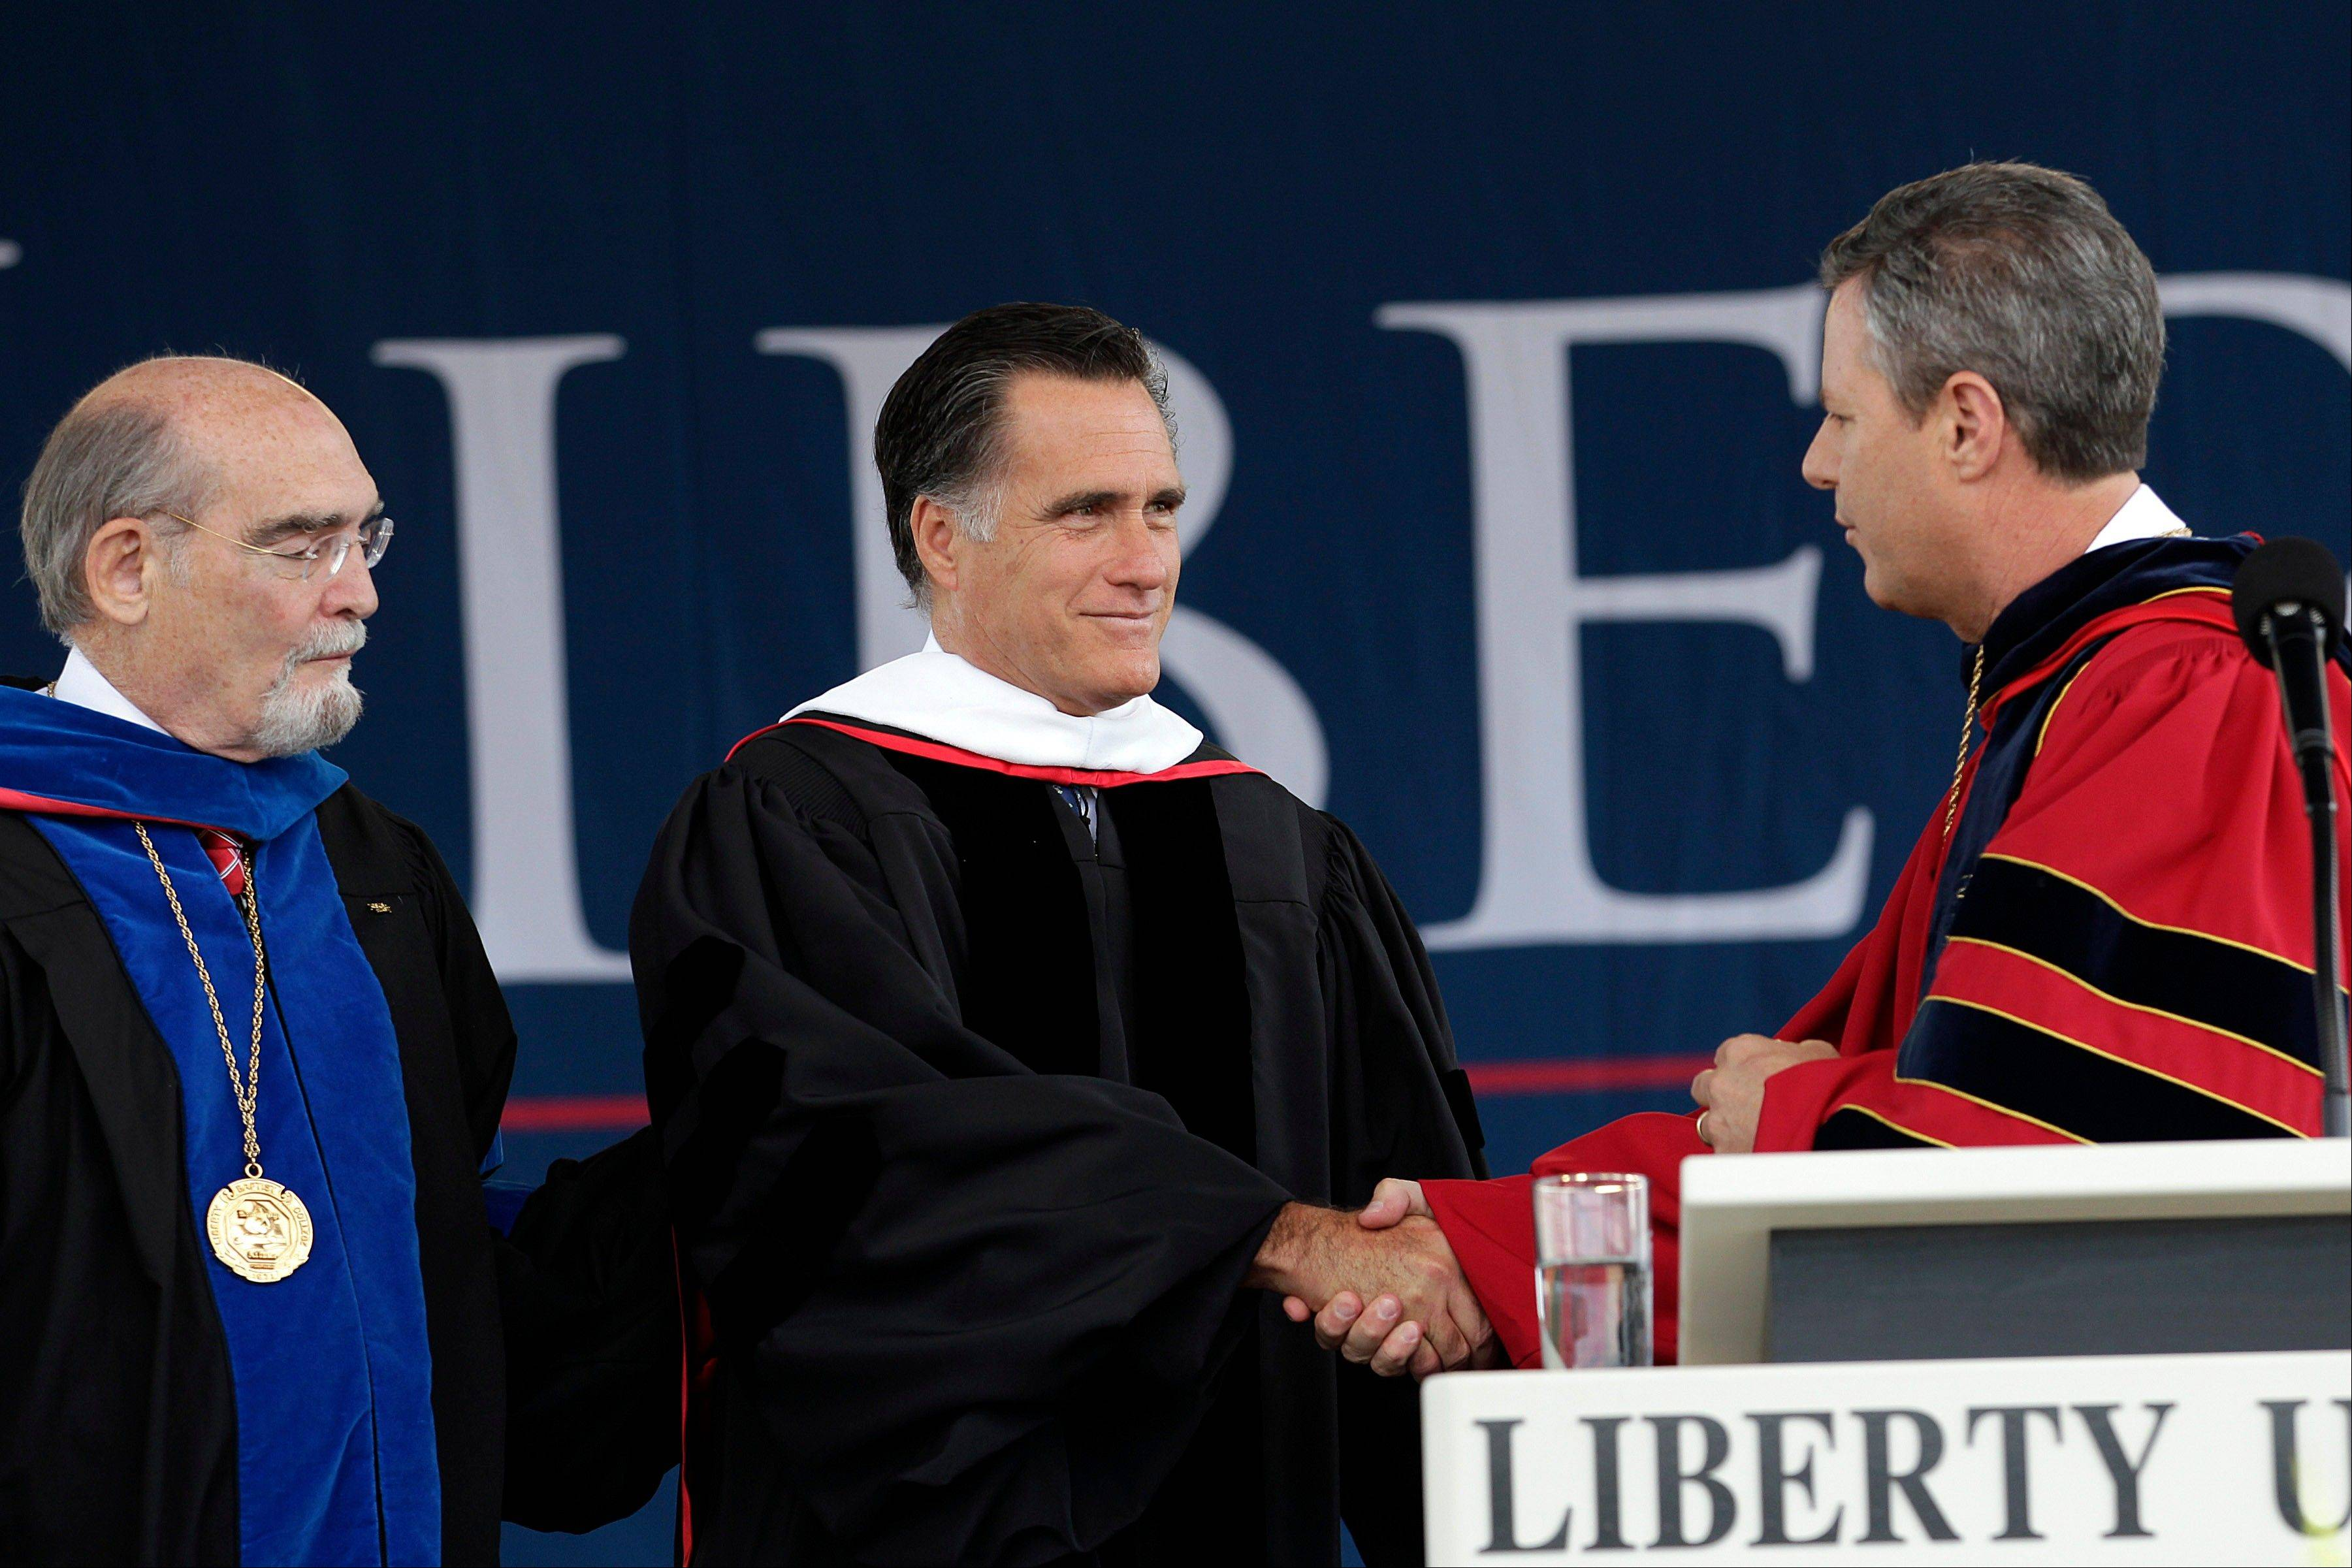 The U.S. Supreme Court has given new life to Liberty University's challenge to President Barack Obama's healthcare overhaul. Republican presidential candidate, former Massachusetts Gov. Mitt Romney, center, is seen here shaking hands with Jerry Falwell Jr., chancellor of Liberty University, before his commencement speech at the campus in Lynchburg, Va., May 12, 2012.